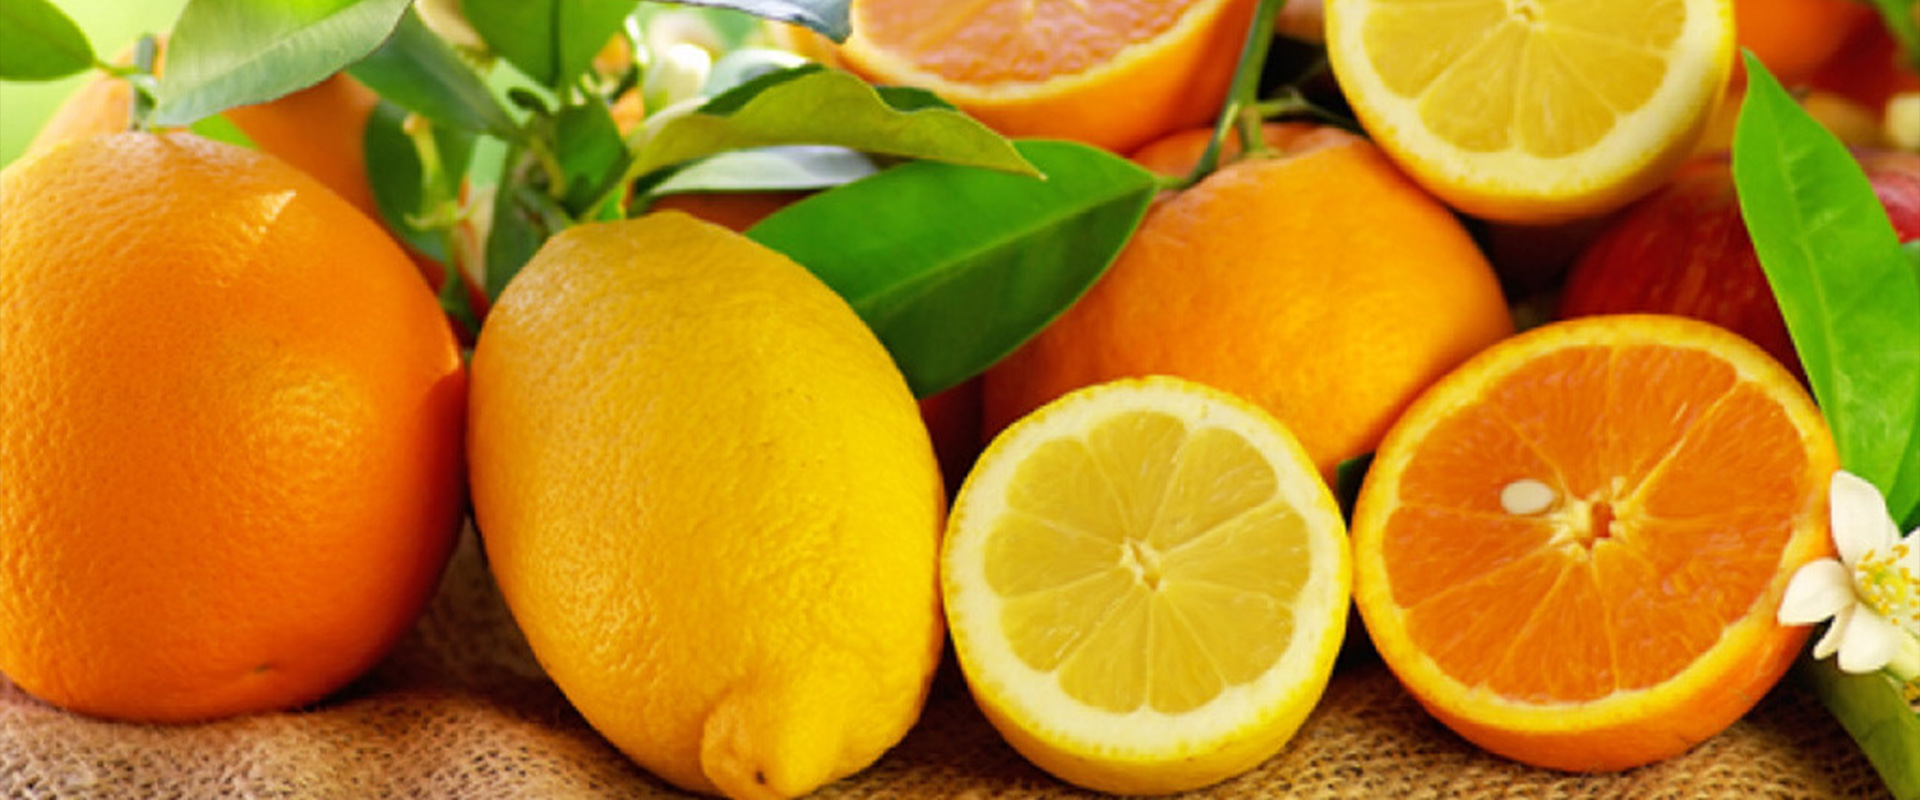 Agroalimentaires-fruits-legumes-tunisie : Universallys